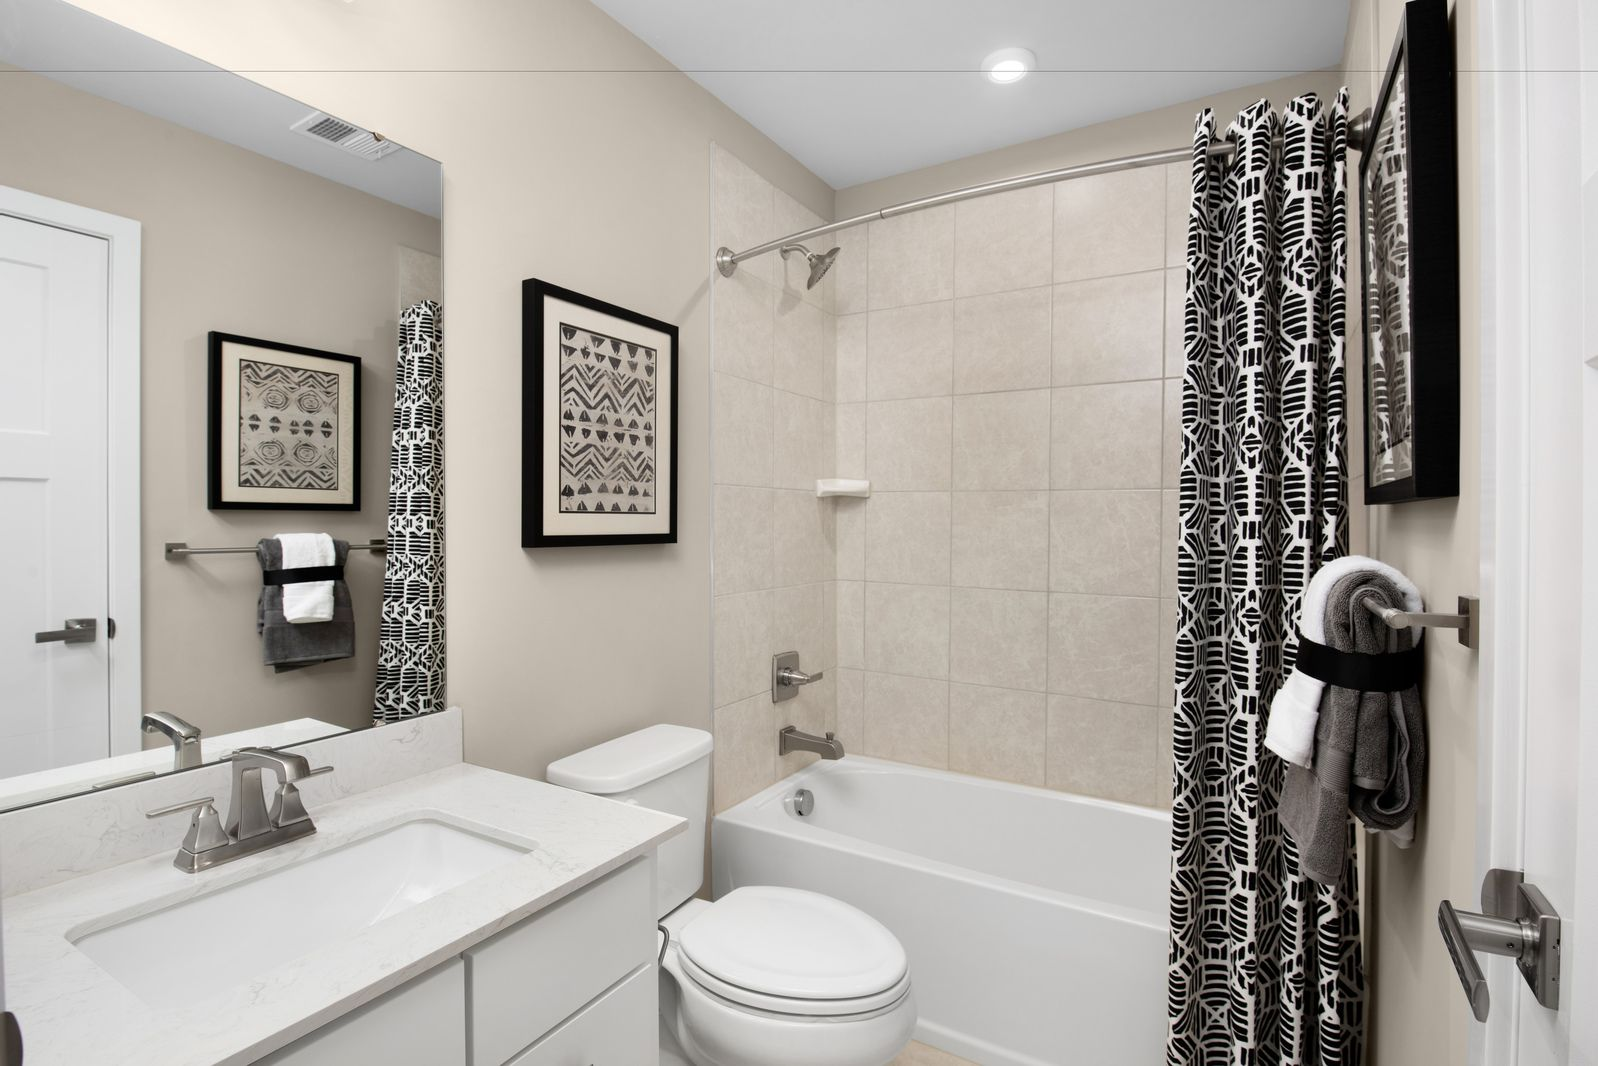 Bathroom featured in the Mendelssohn Front Entry Garage By Ryan Homes in Greenville-Spartanburg, SC